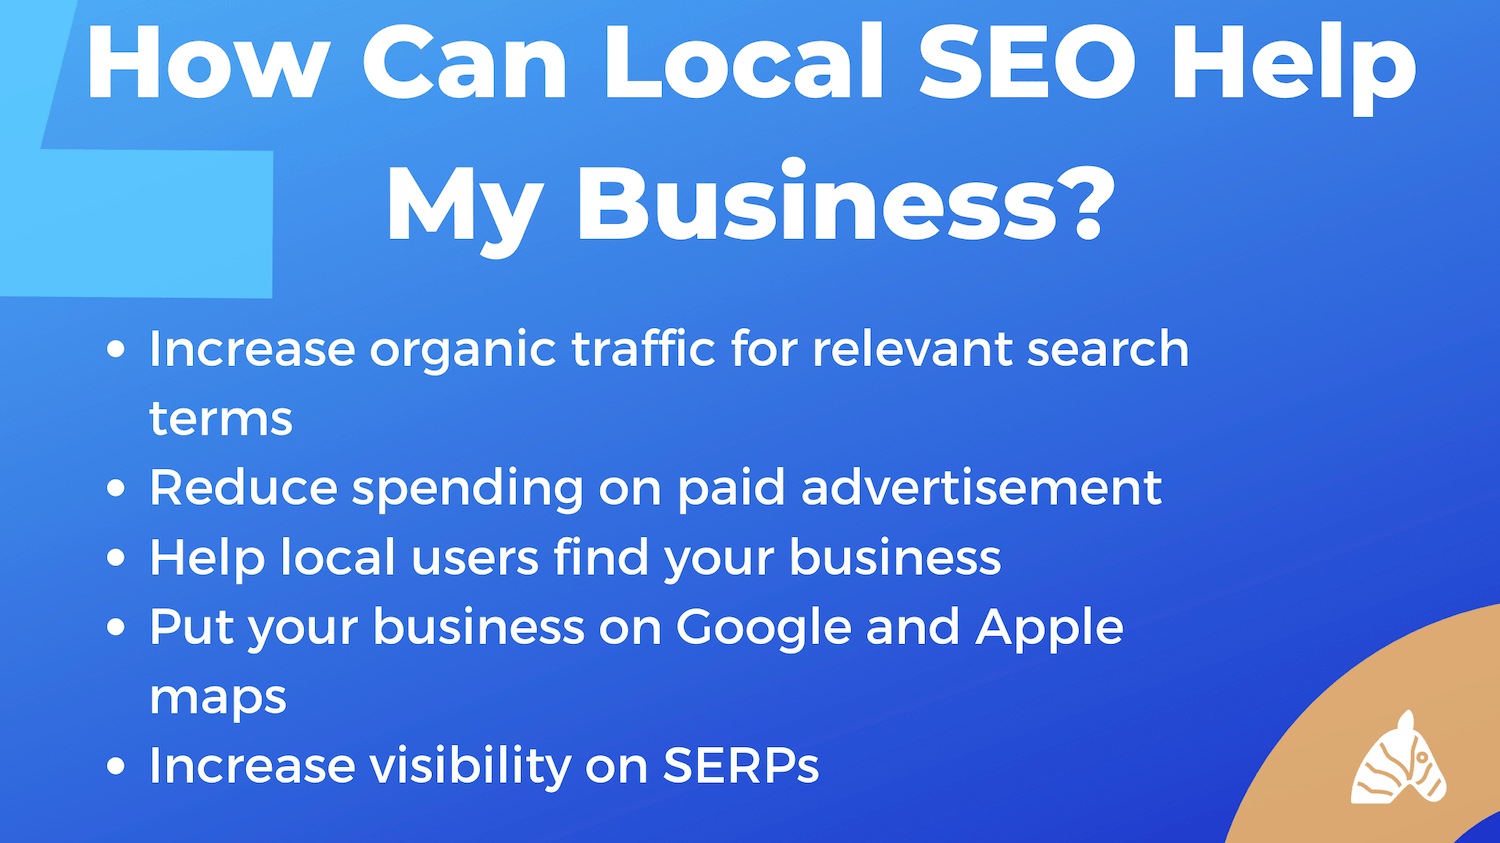 Local SEO and business growth statistic